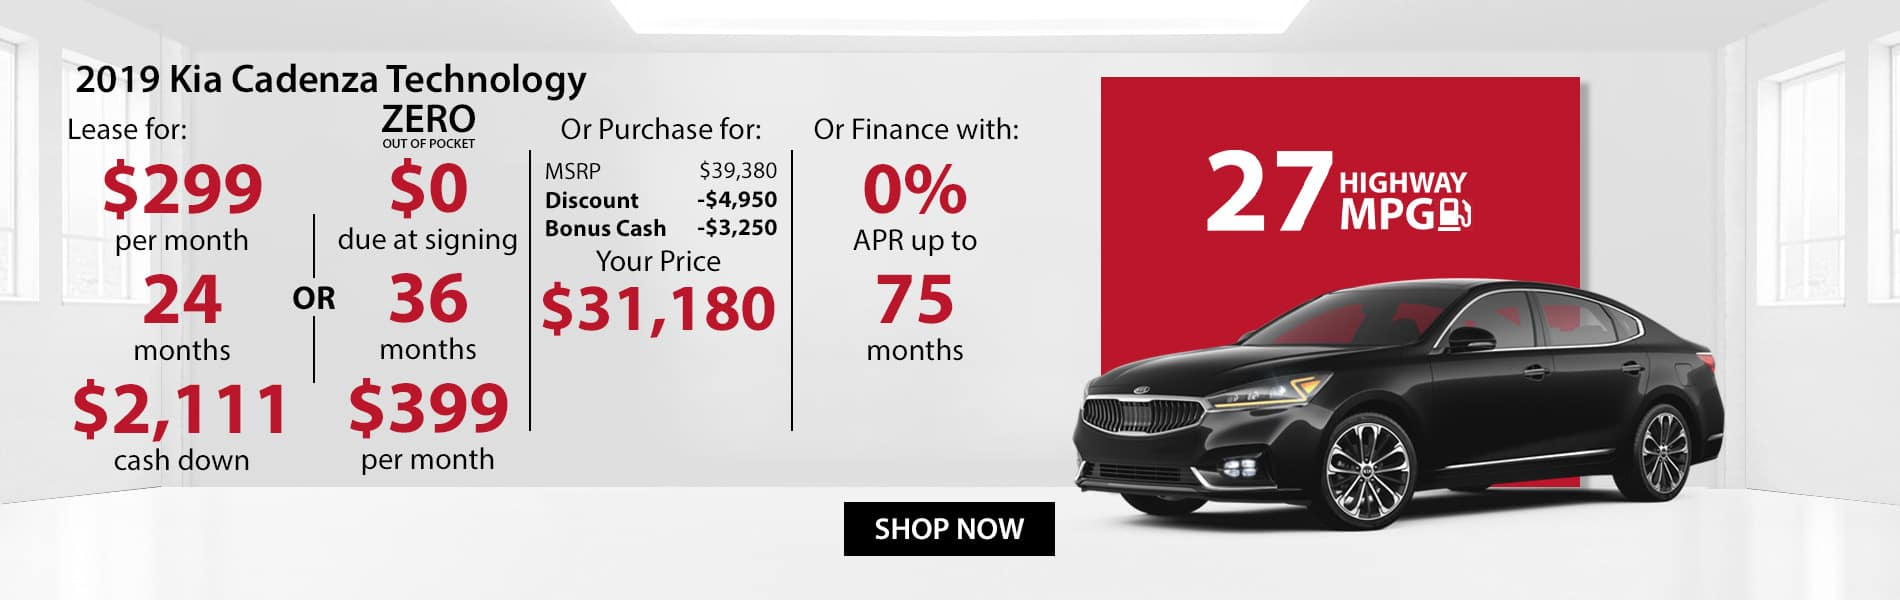 Special offer on 2019 Kia CadenzaTechnology! Lease for $299 with $2,111 down or Purchase for $31,180 or get 0% APR for 75 months.